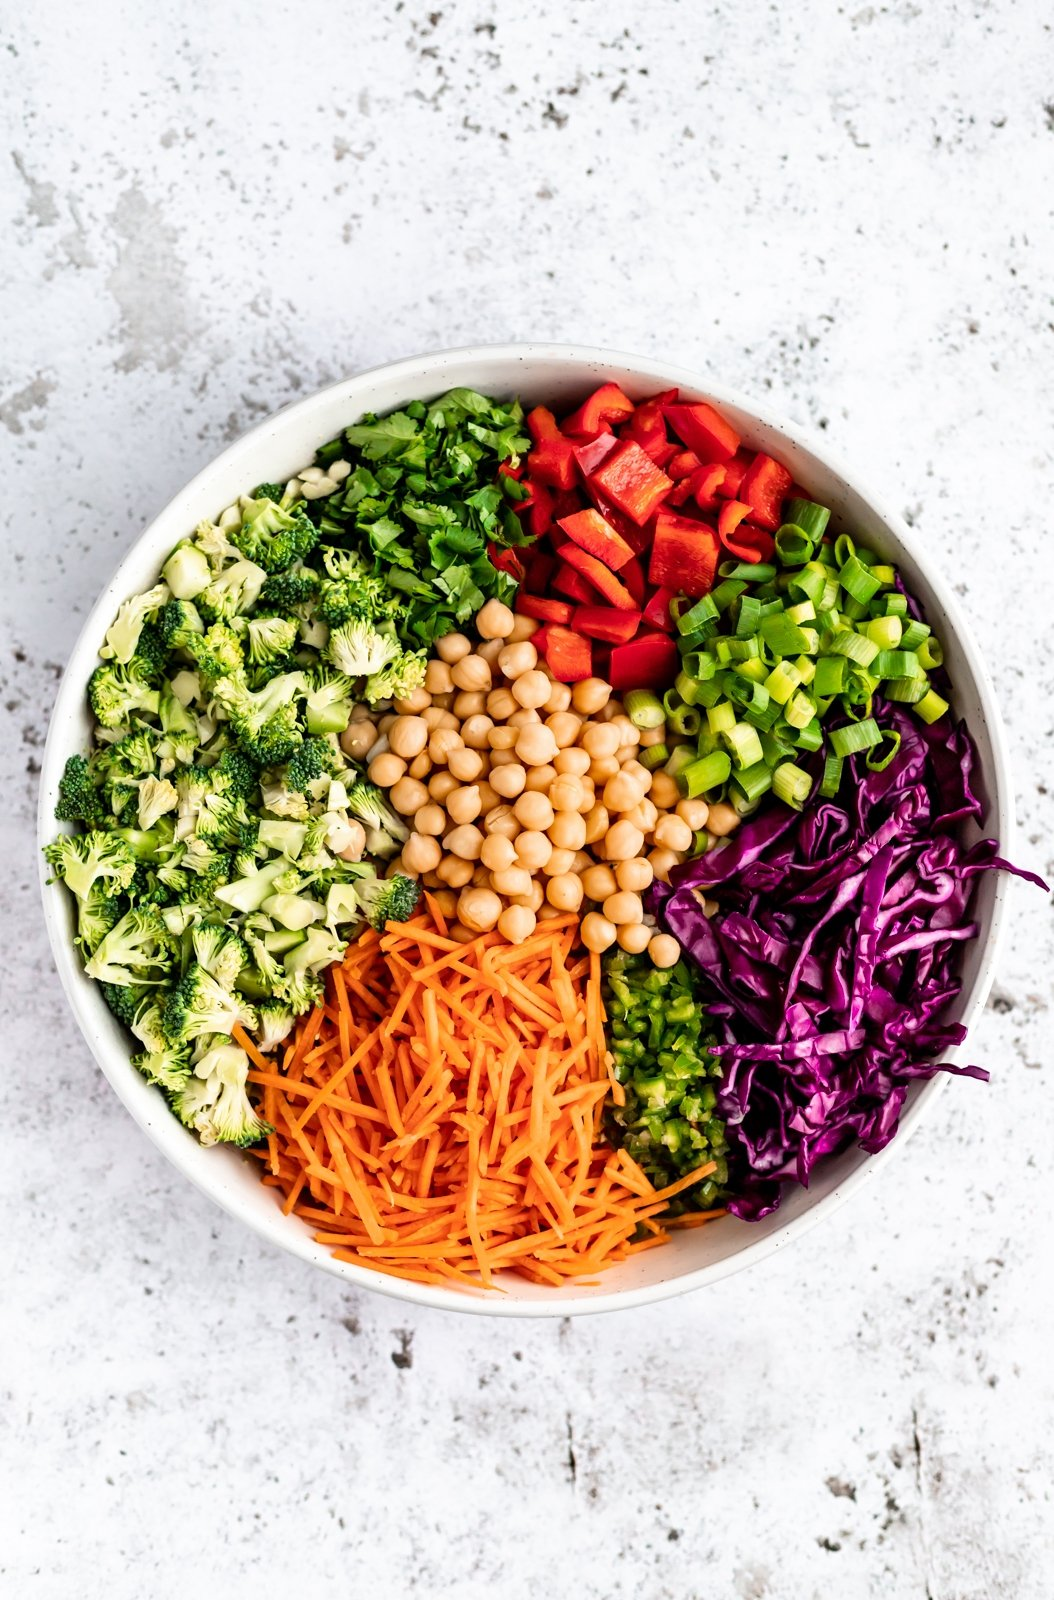 Healthy Delicious Recipes Using A Can Of Chickpeas Ambitious